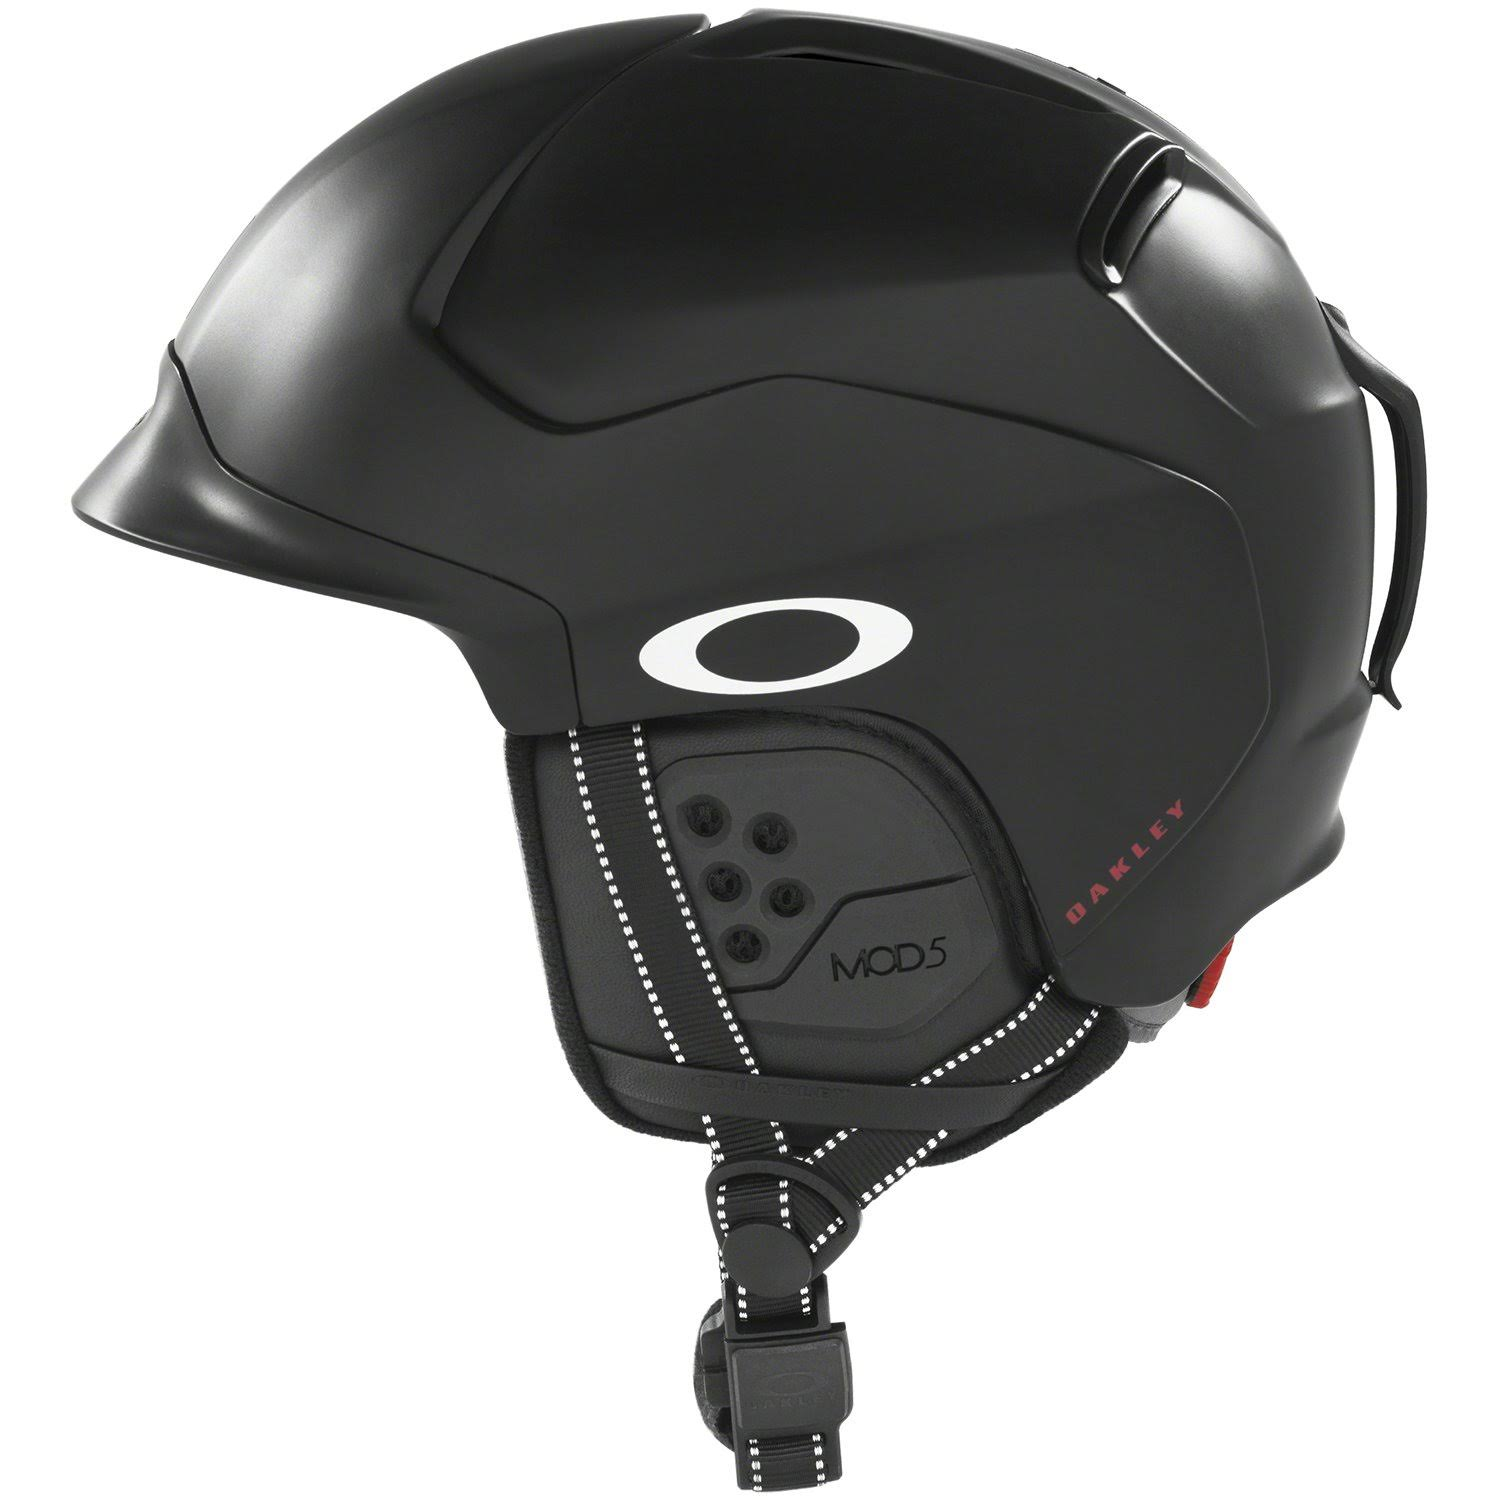 Oakley Mod5 Snow Helmet - Matte Black, Medium